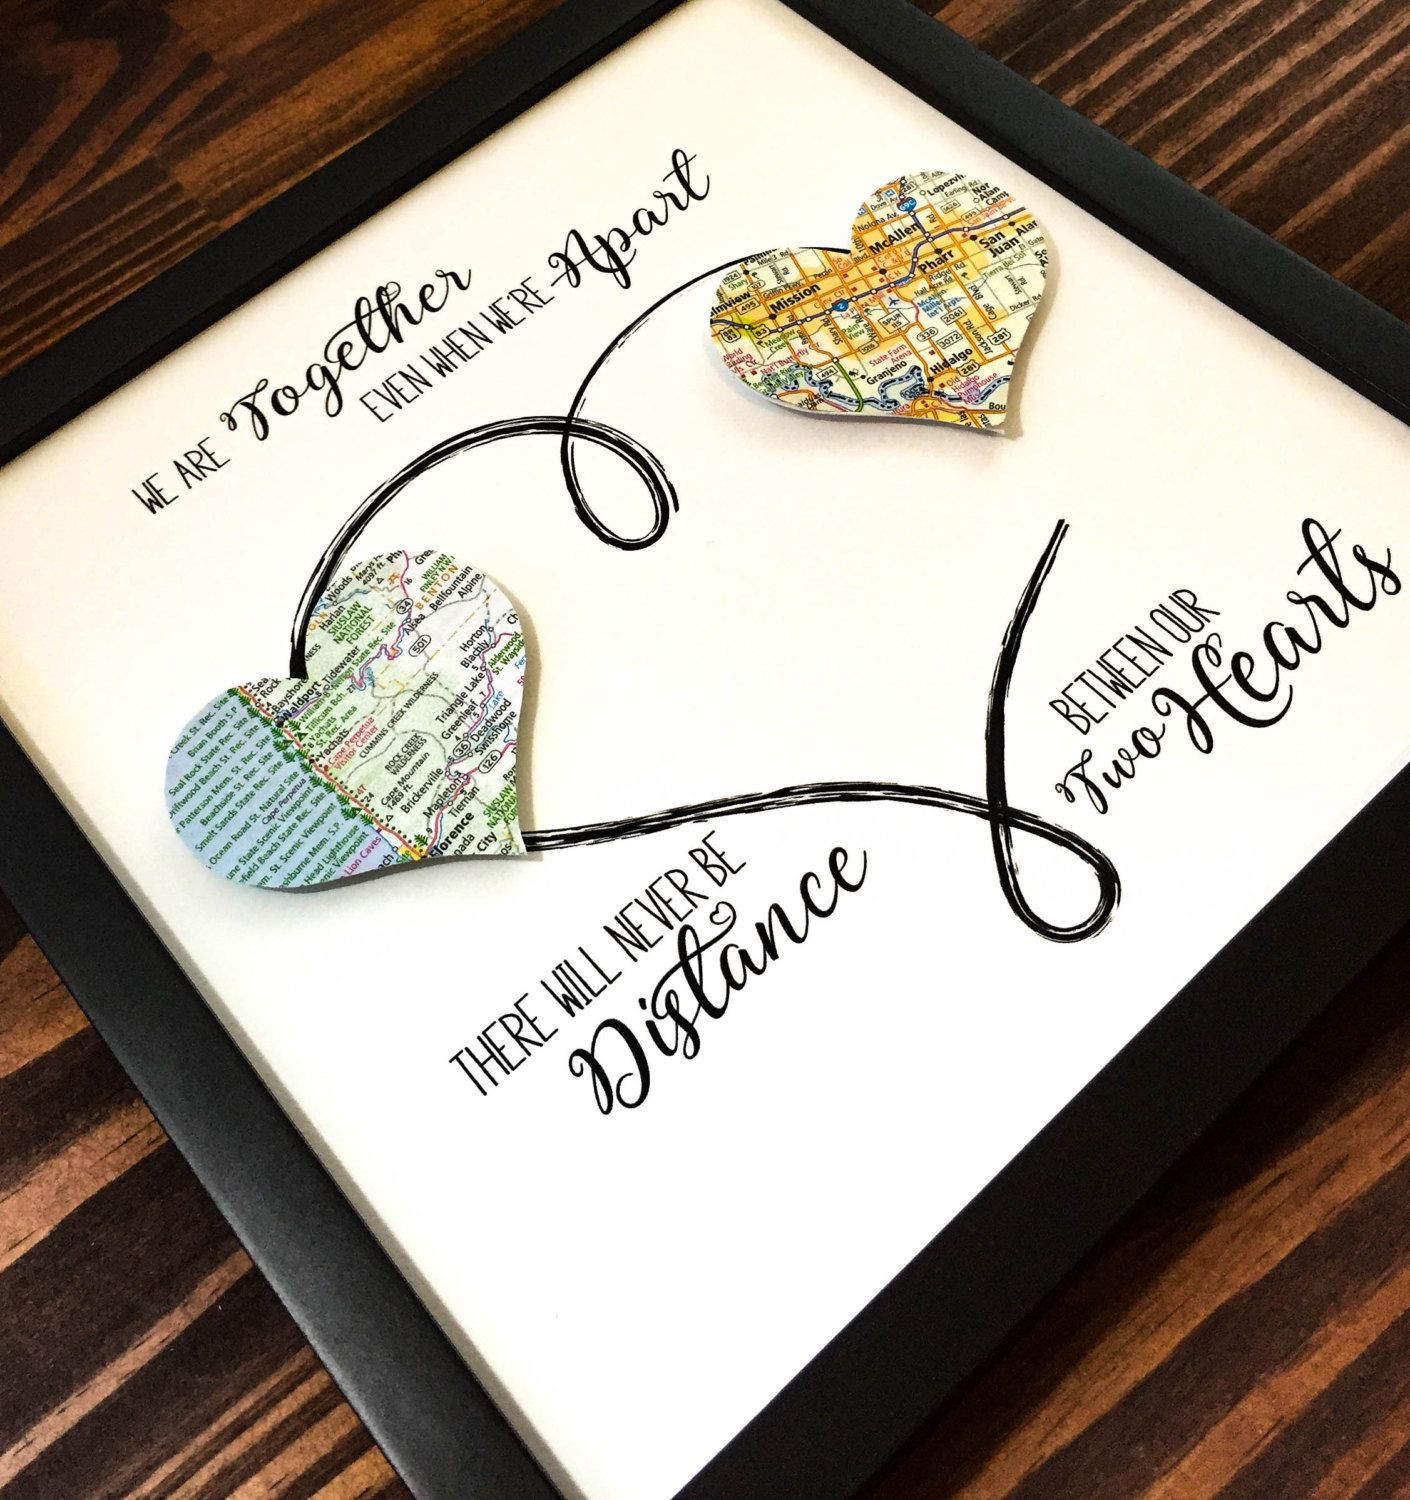 Best ideas about DIY Gifts For Your Best Friend . Save or Pin Personalized Best Friend Gift Going Away Gift by Now.